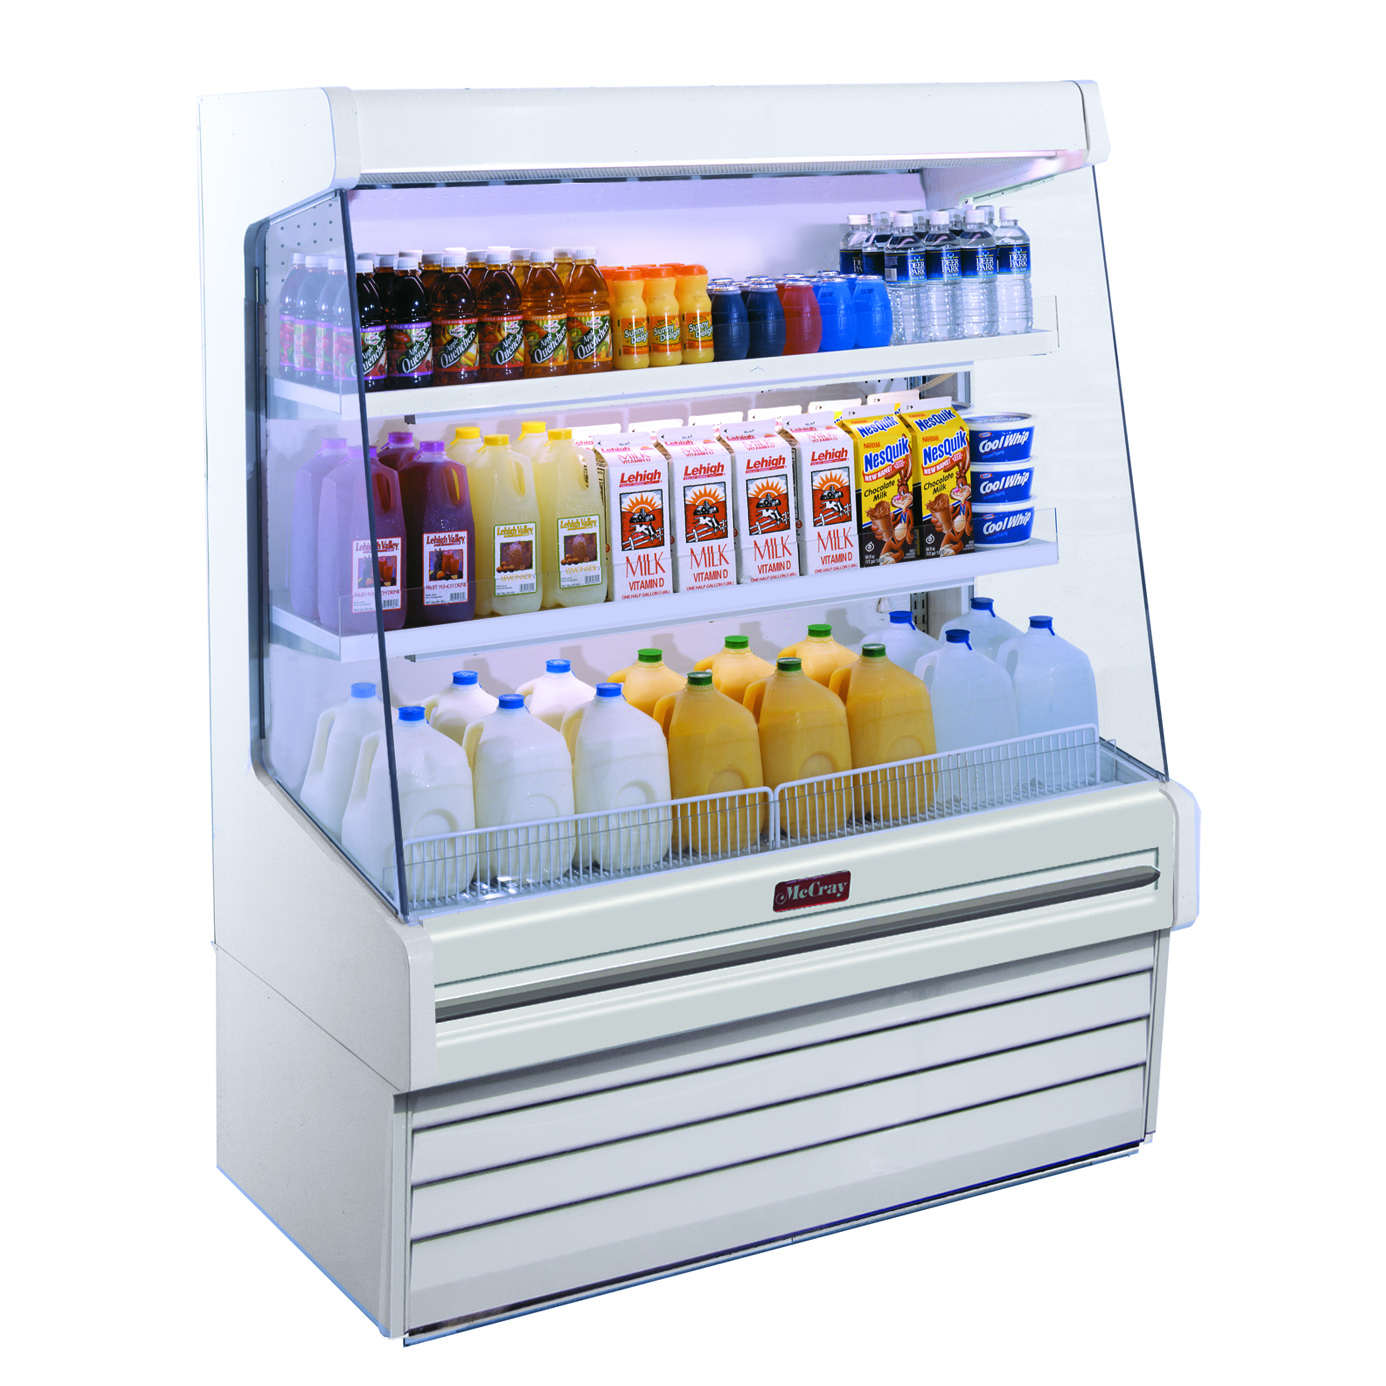 Howard-McCray SC-OD30E-4L-LED merchandiser, open refrigerated display